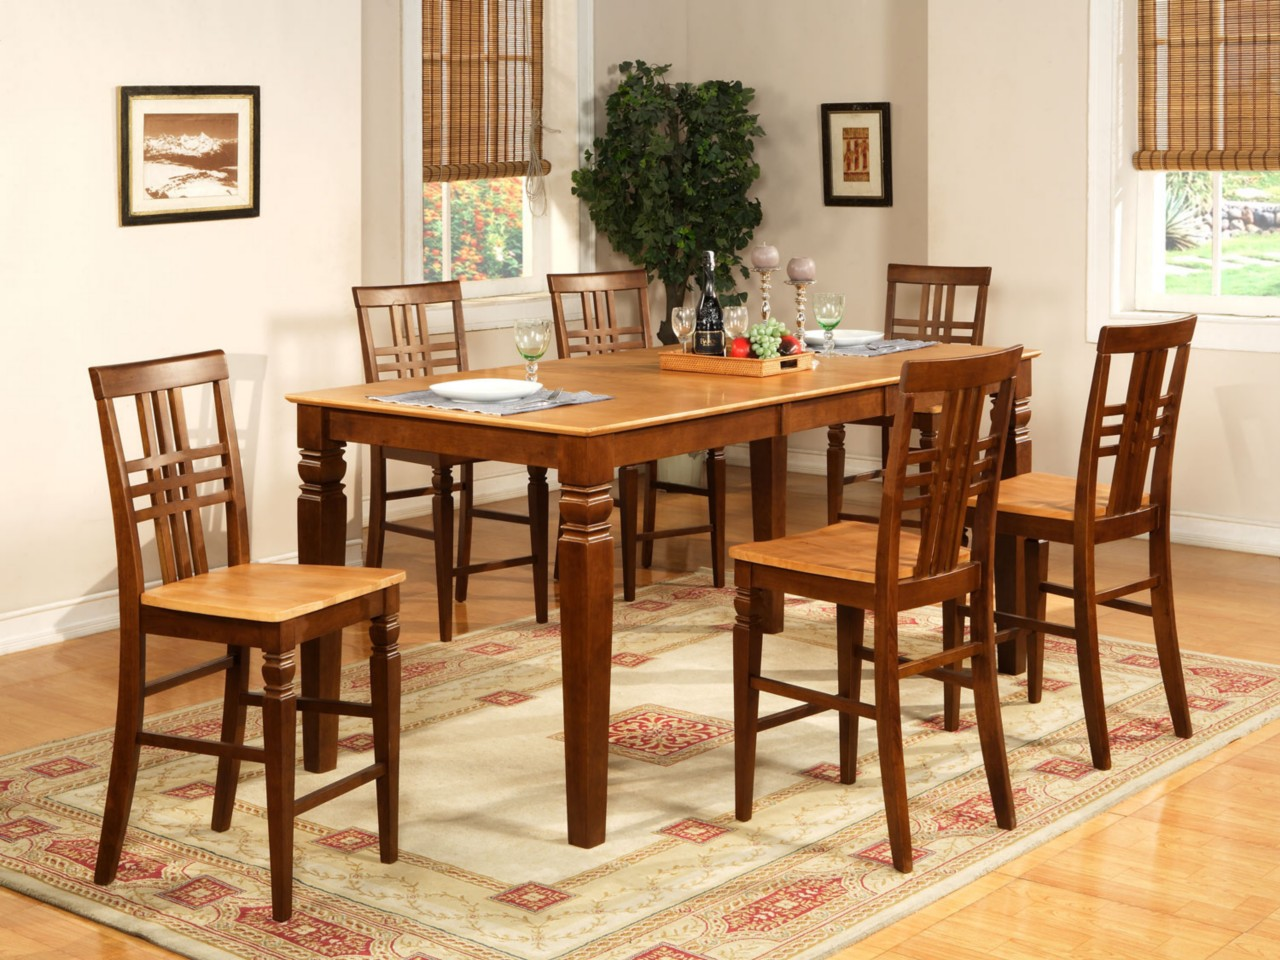 counter height table jofran dining set kitchen table efurnituremart counter height kitchen chairs 9PC DINETTE KITCHEN COUNTER HEIGHT TABLE WITH 8 CHAIRS IN ESPRESSO